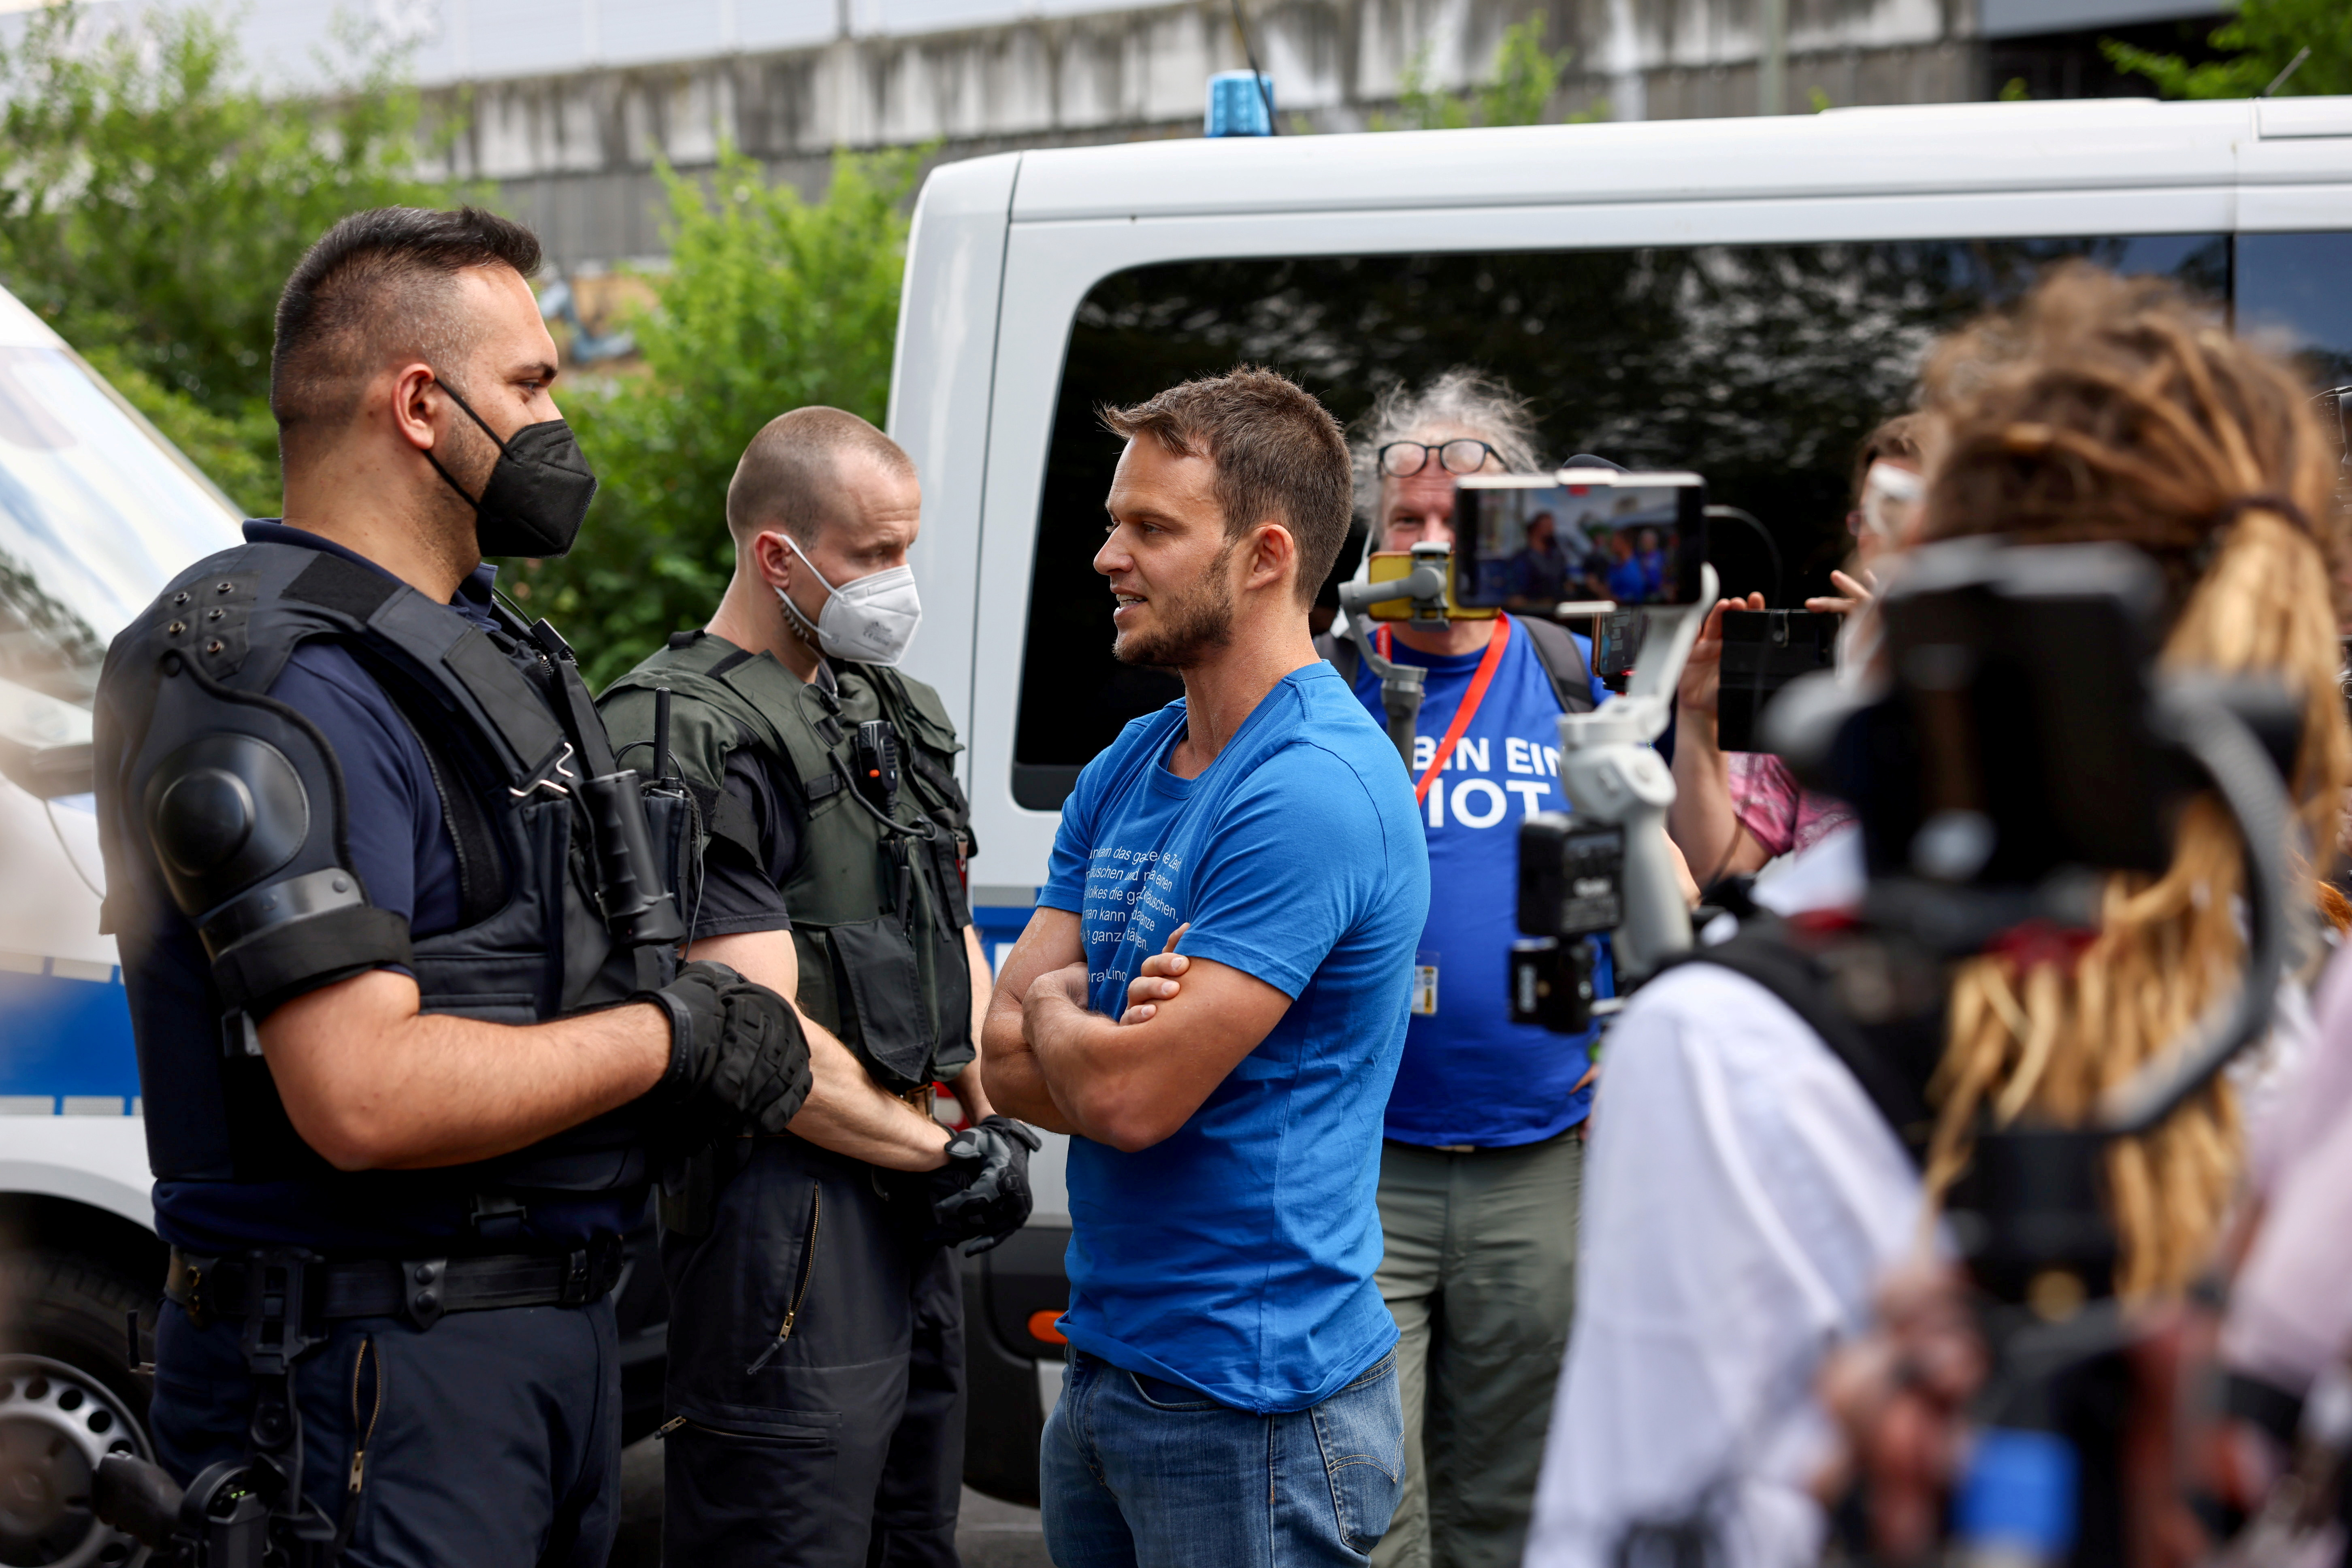 Markus Haintz, a lawyer with the Querdenken group, speaks with police officers during a protest against the government measures to curb the spread of the coronavirus disease (COVID-19), in Berlin, Germany, July 31, 2021. REUTERS/Christian Mang